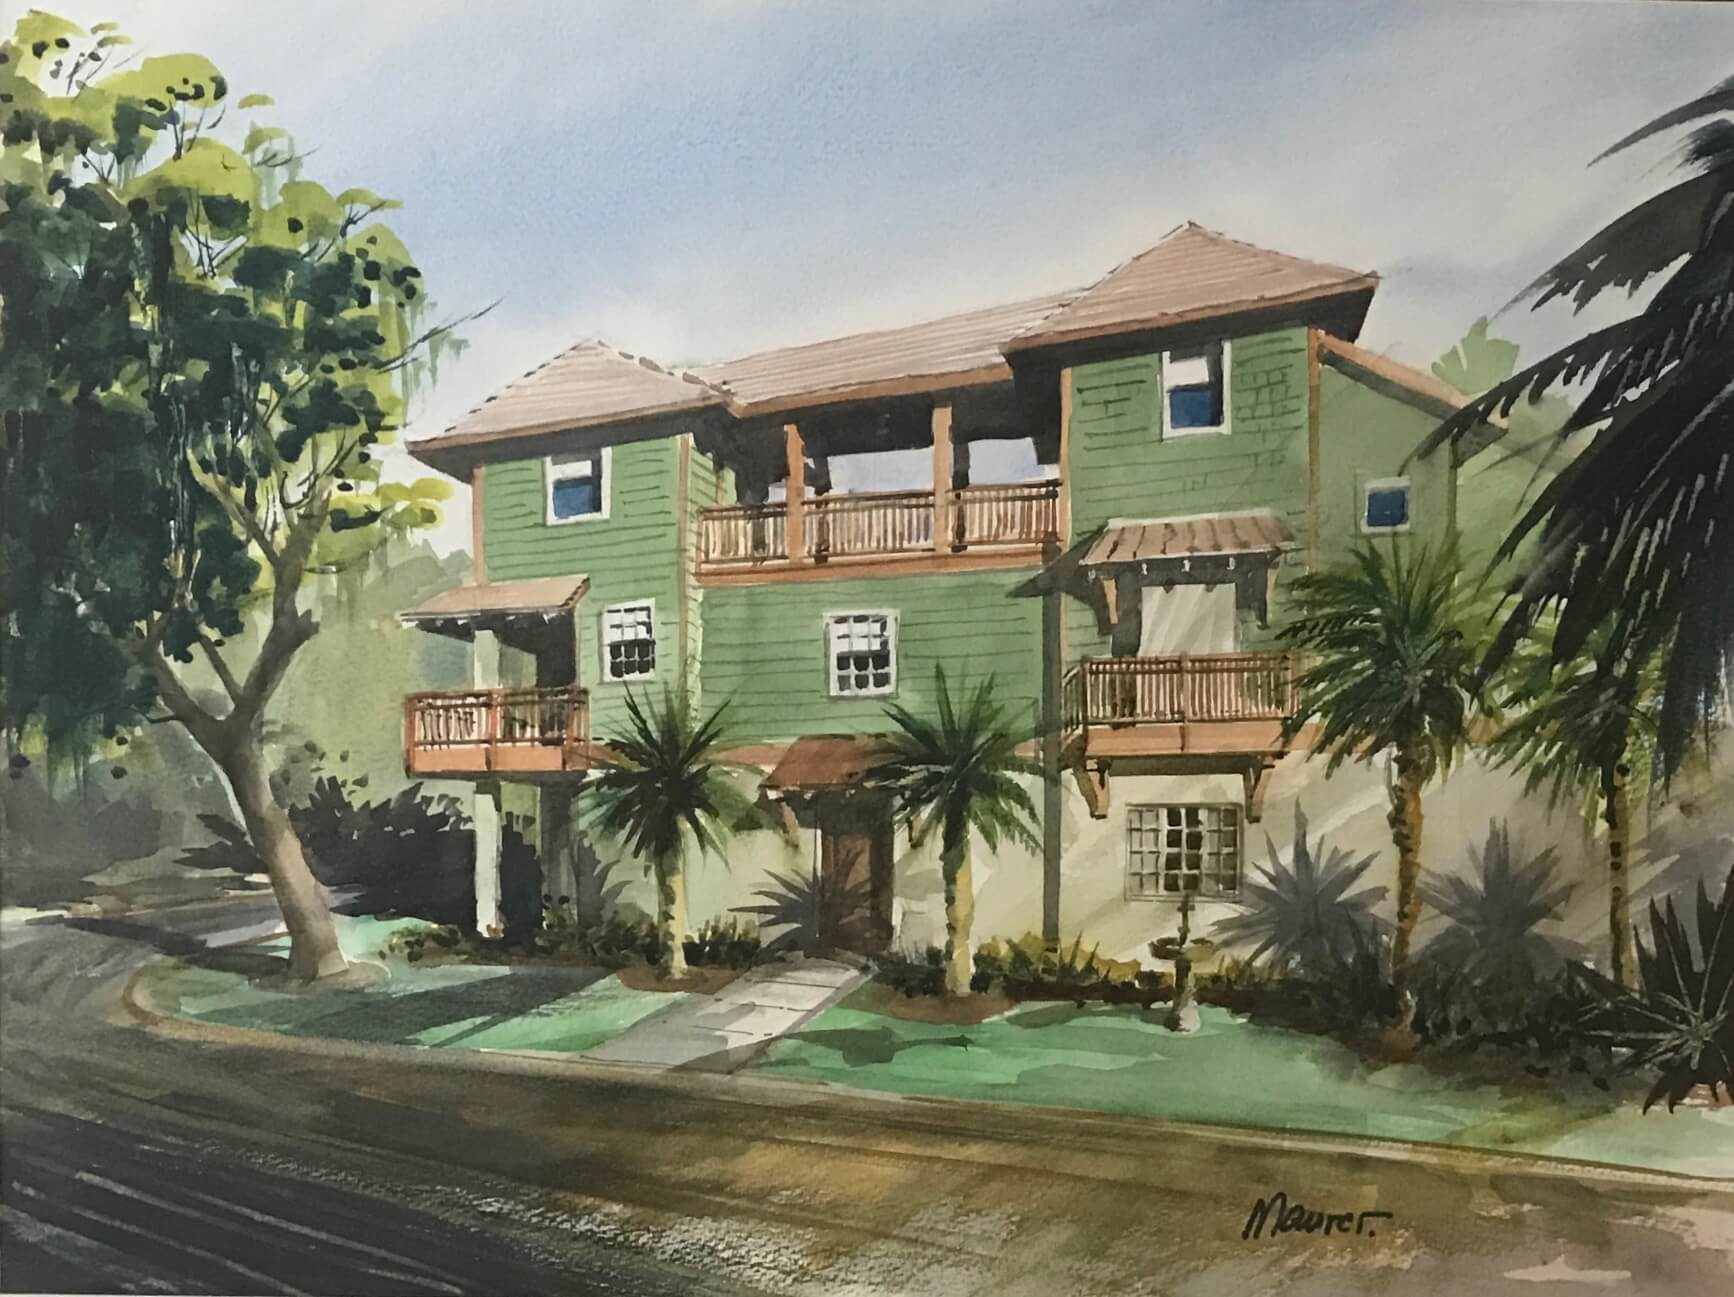 Martha and Rick's new house in Old Town painting by Bill Maurer